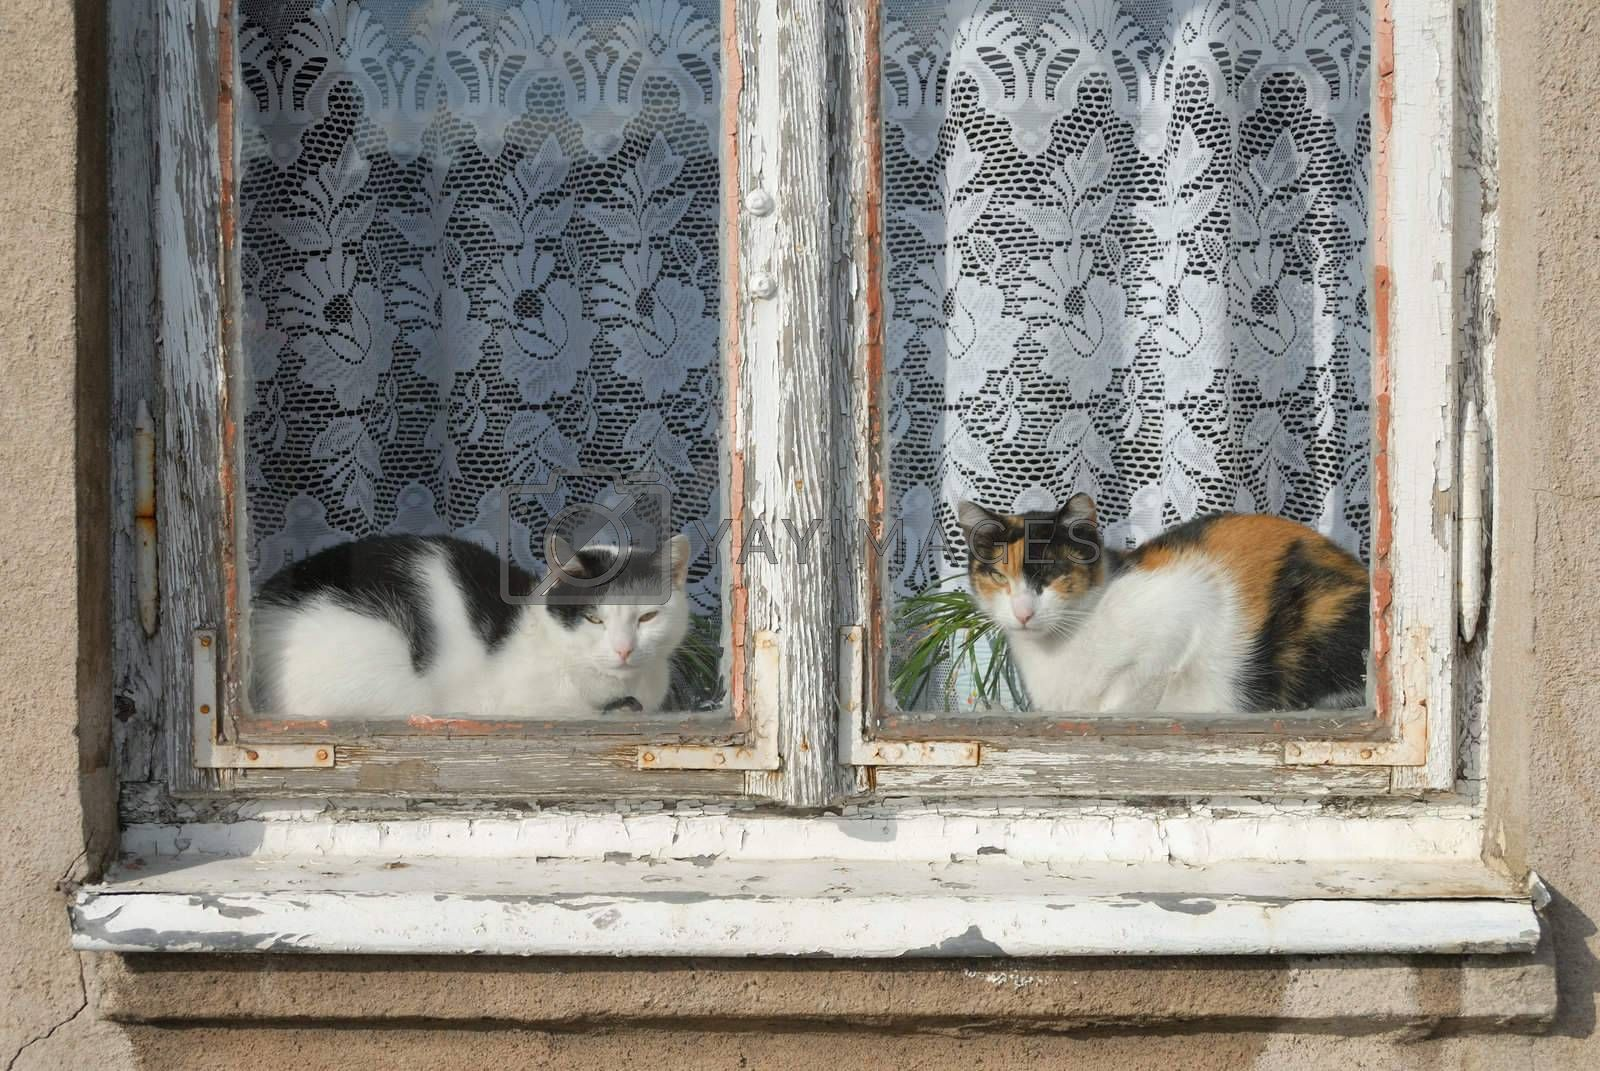 Two cats sitting in a window and looking through